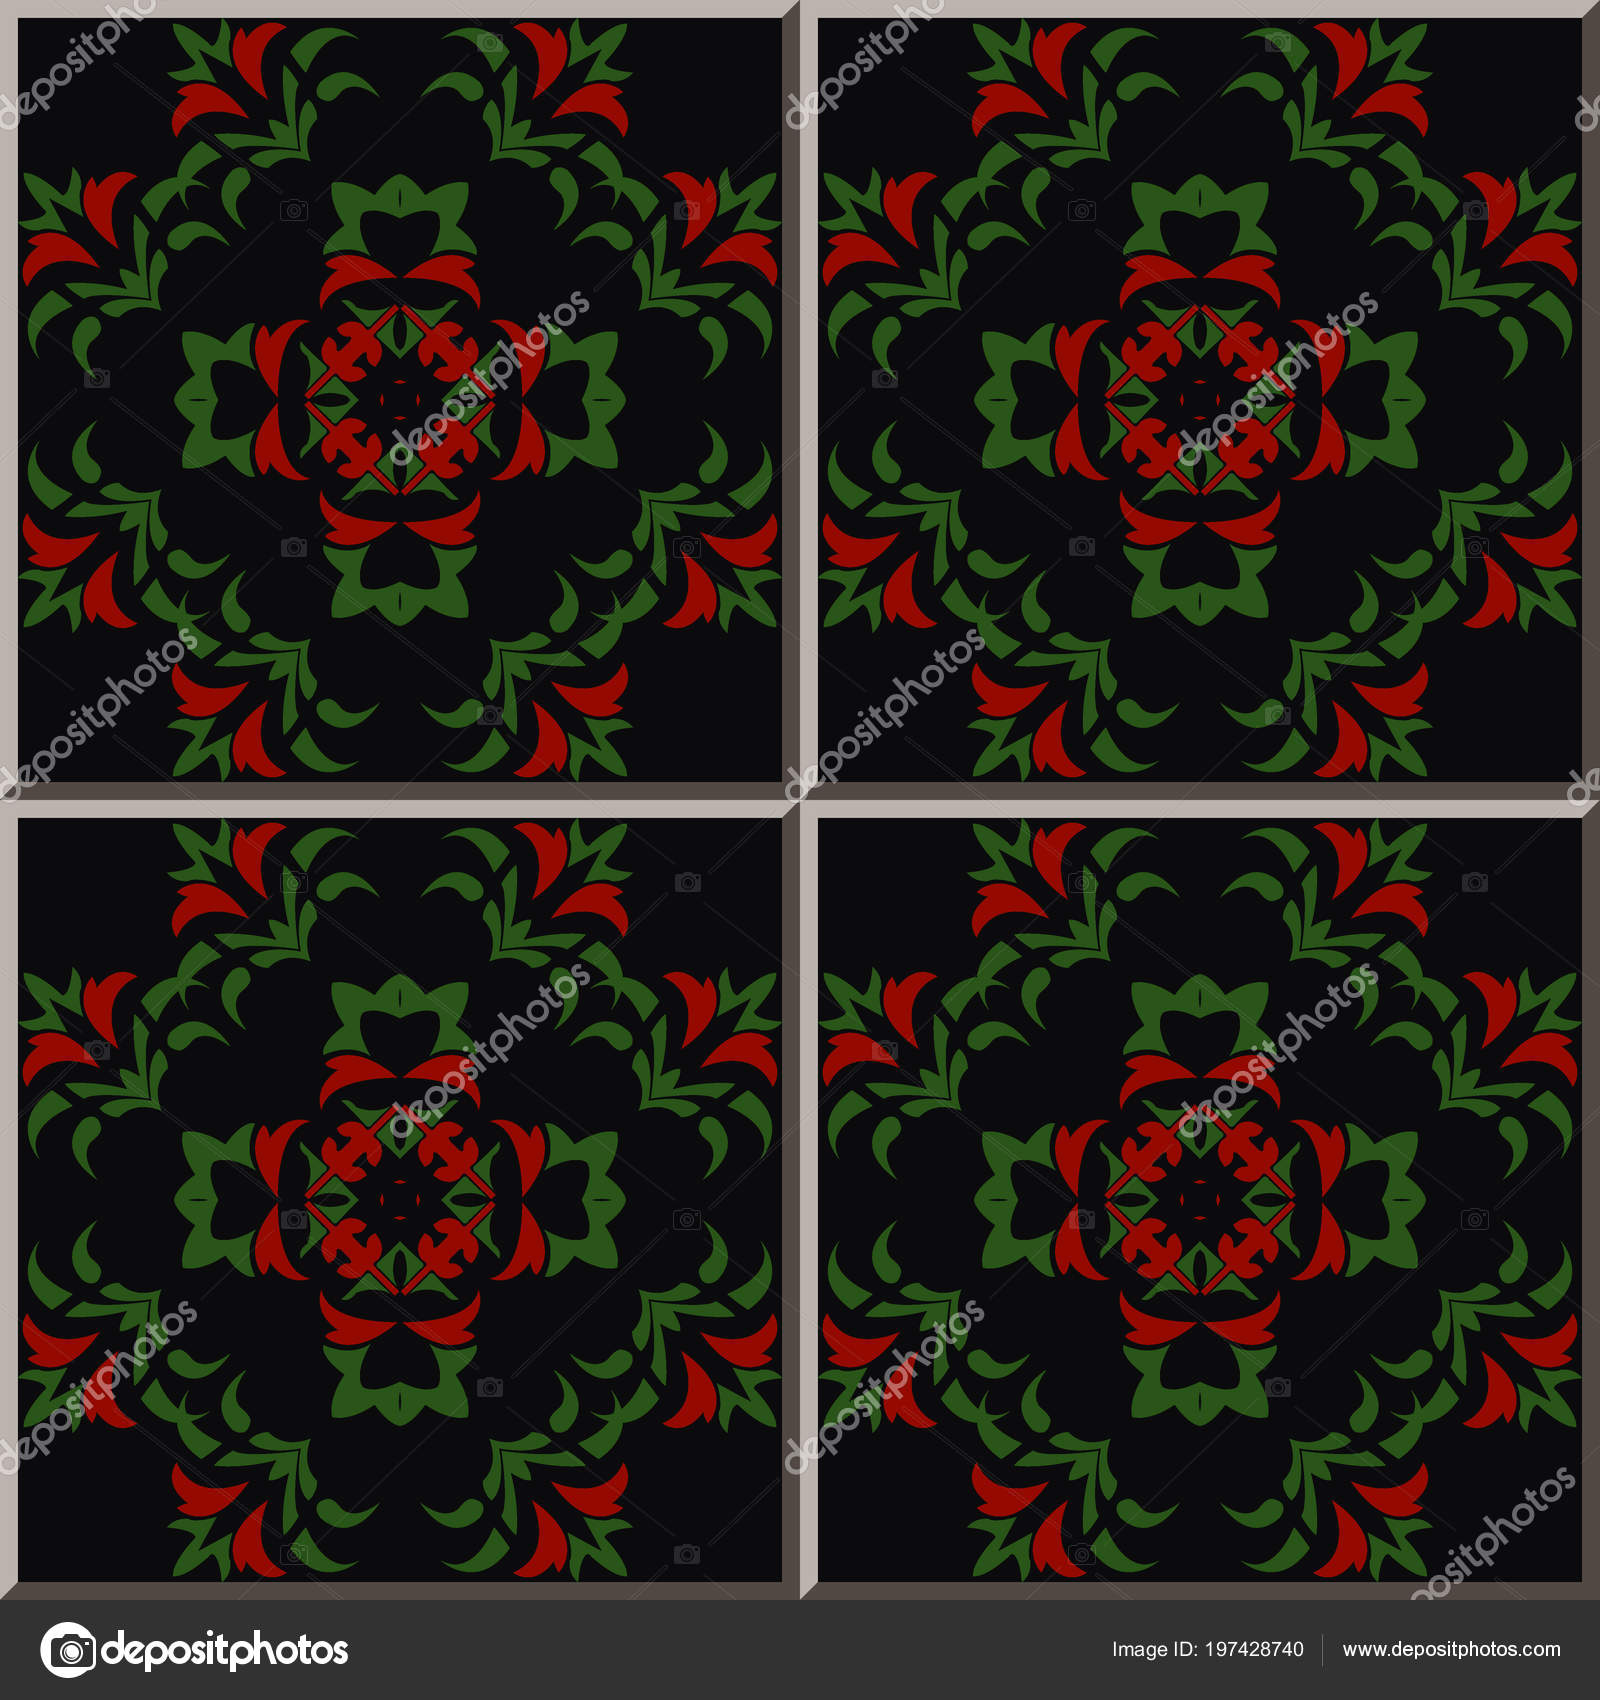 Ceramic Tile Pattern Botanic Garden Curve Cross Green Leaf Red Stock Vector C Kusabi 197428740